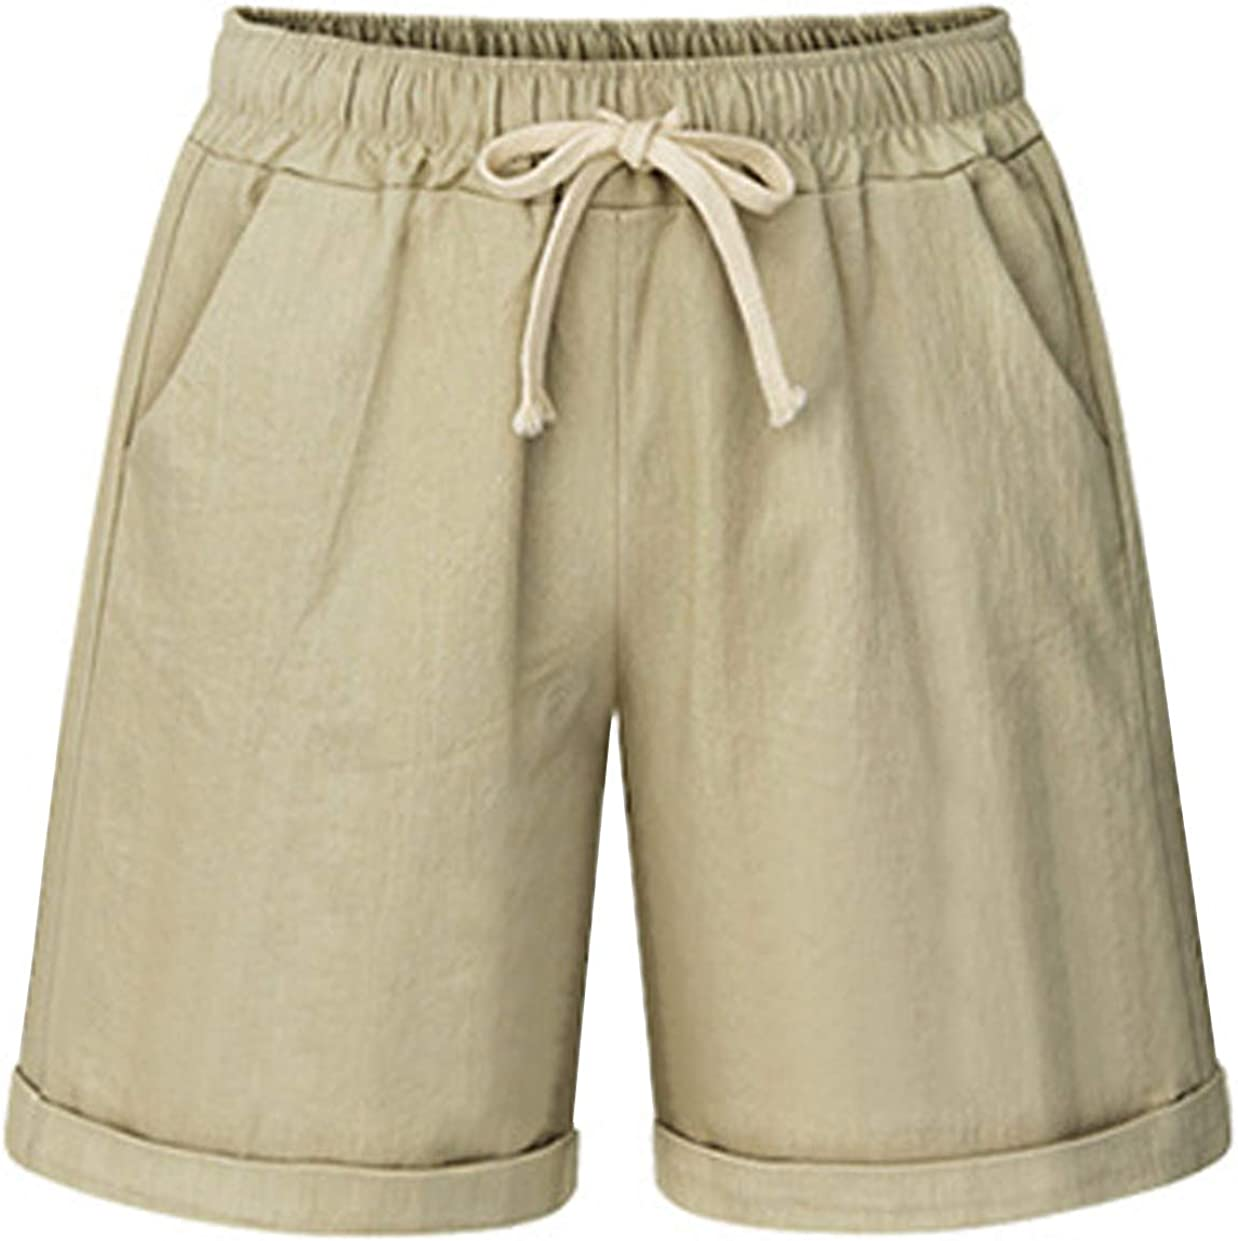 HOW'ON Women's Elastic Waist Casual Comfy Cotton Beach Shorts with Drawstring